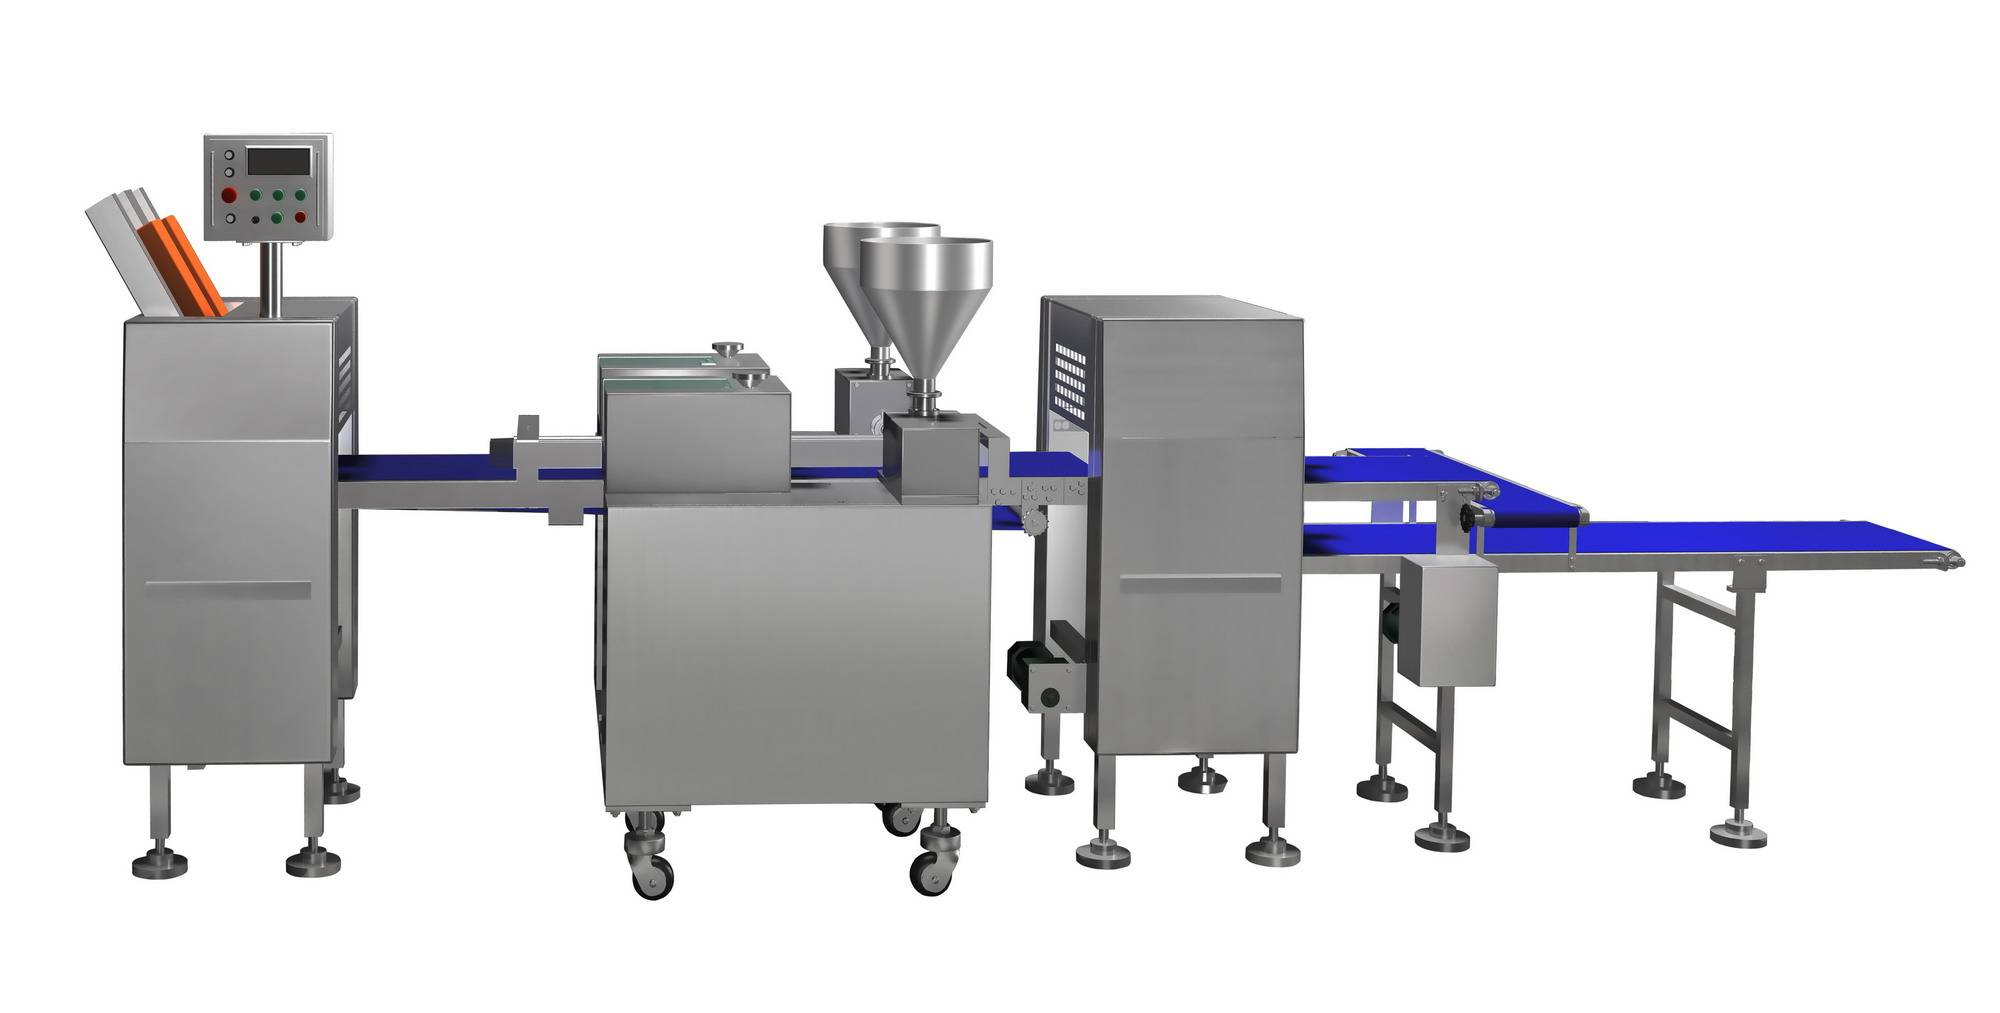 Pita/pocket bread production line